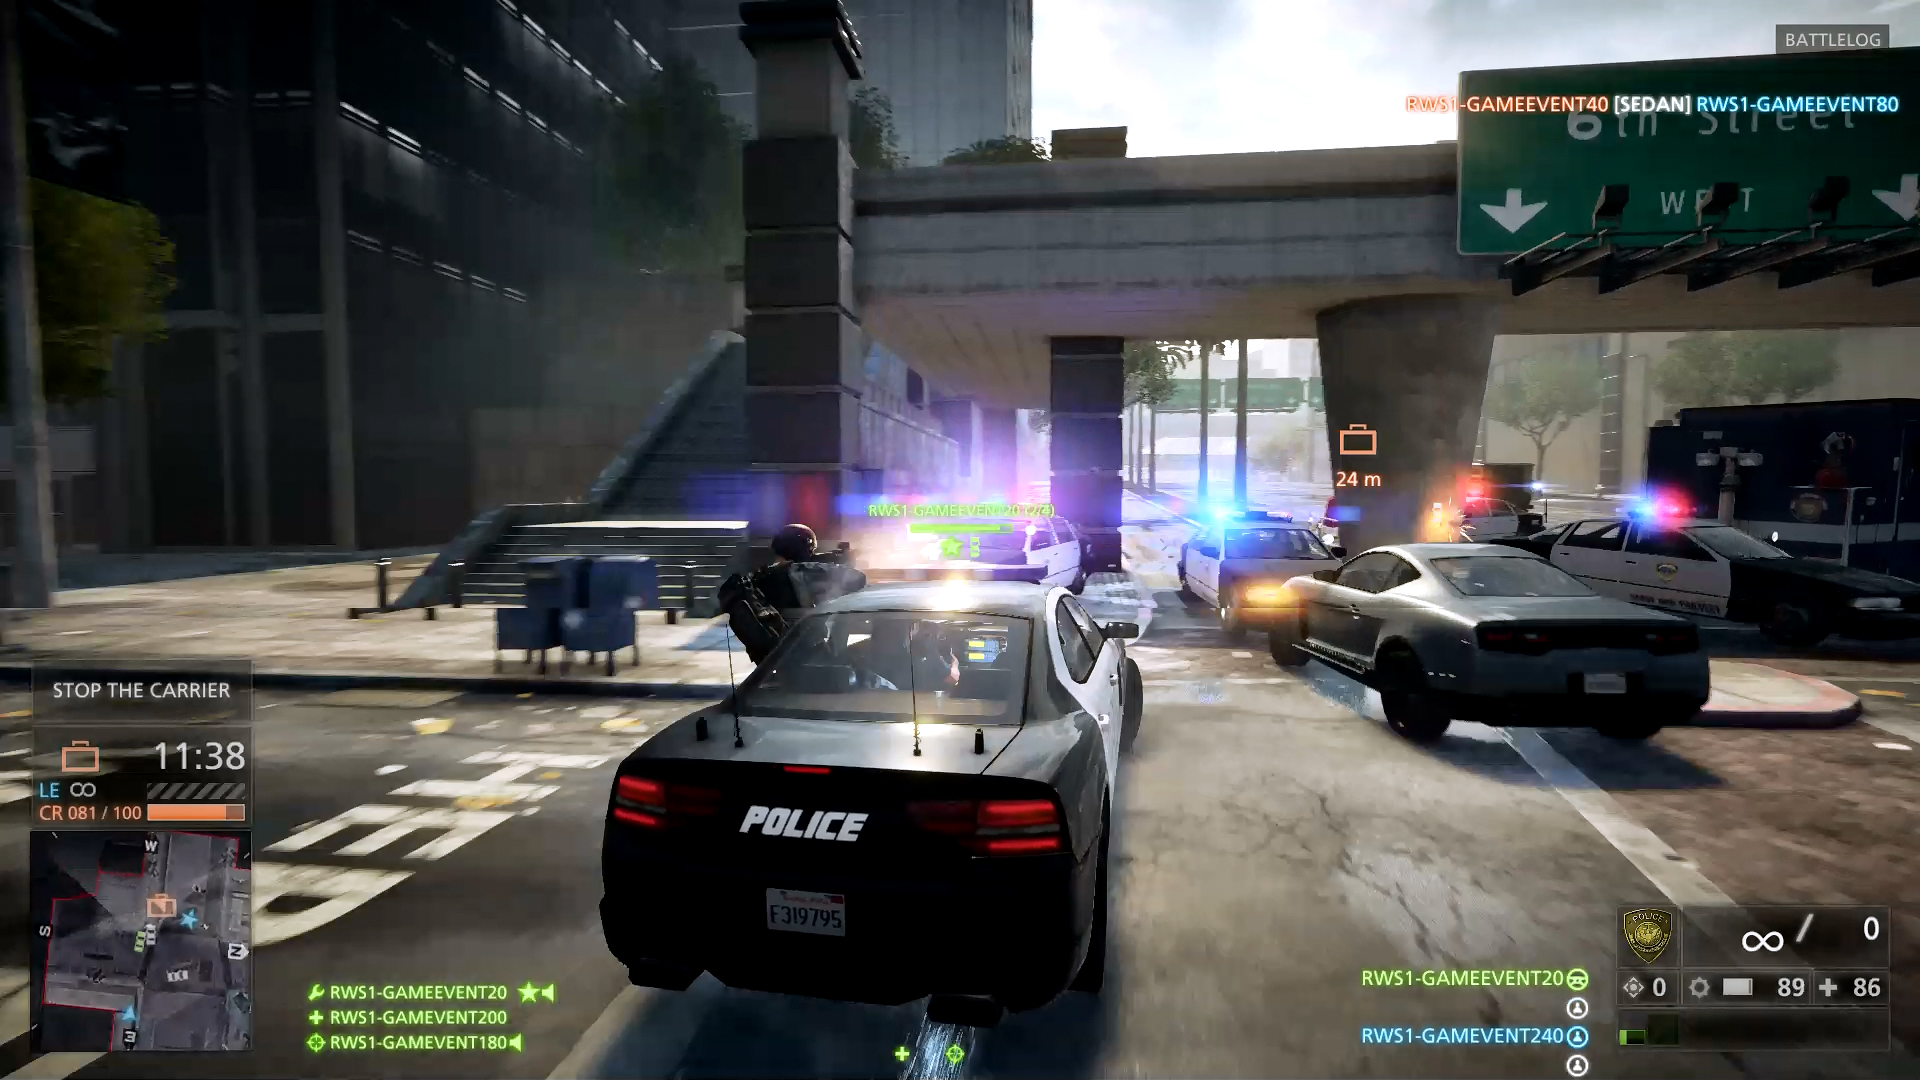 battlefield hardline free download pc with multiplayer